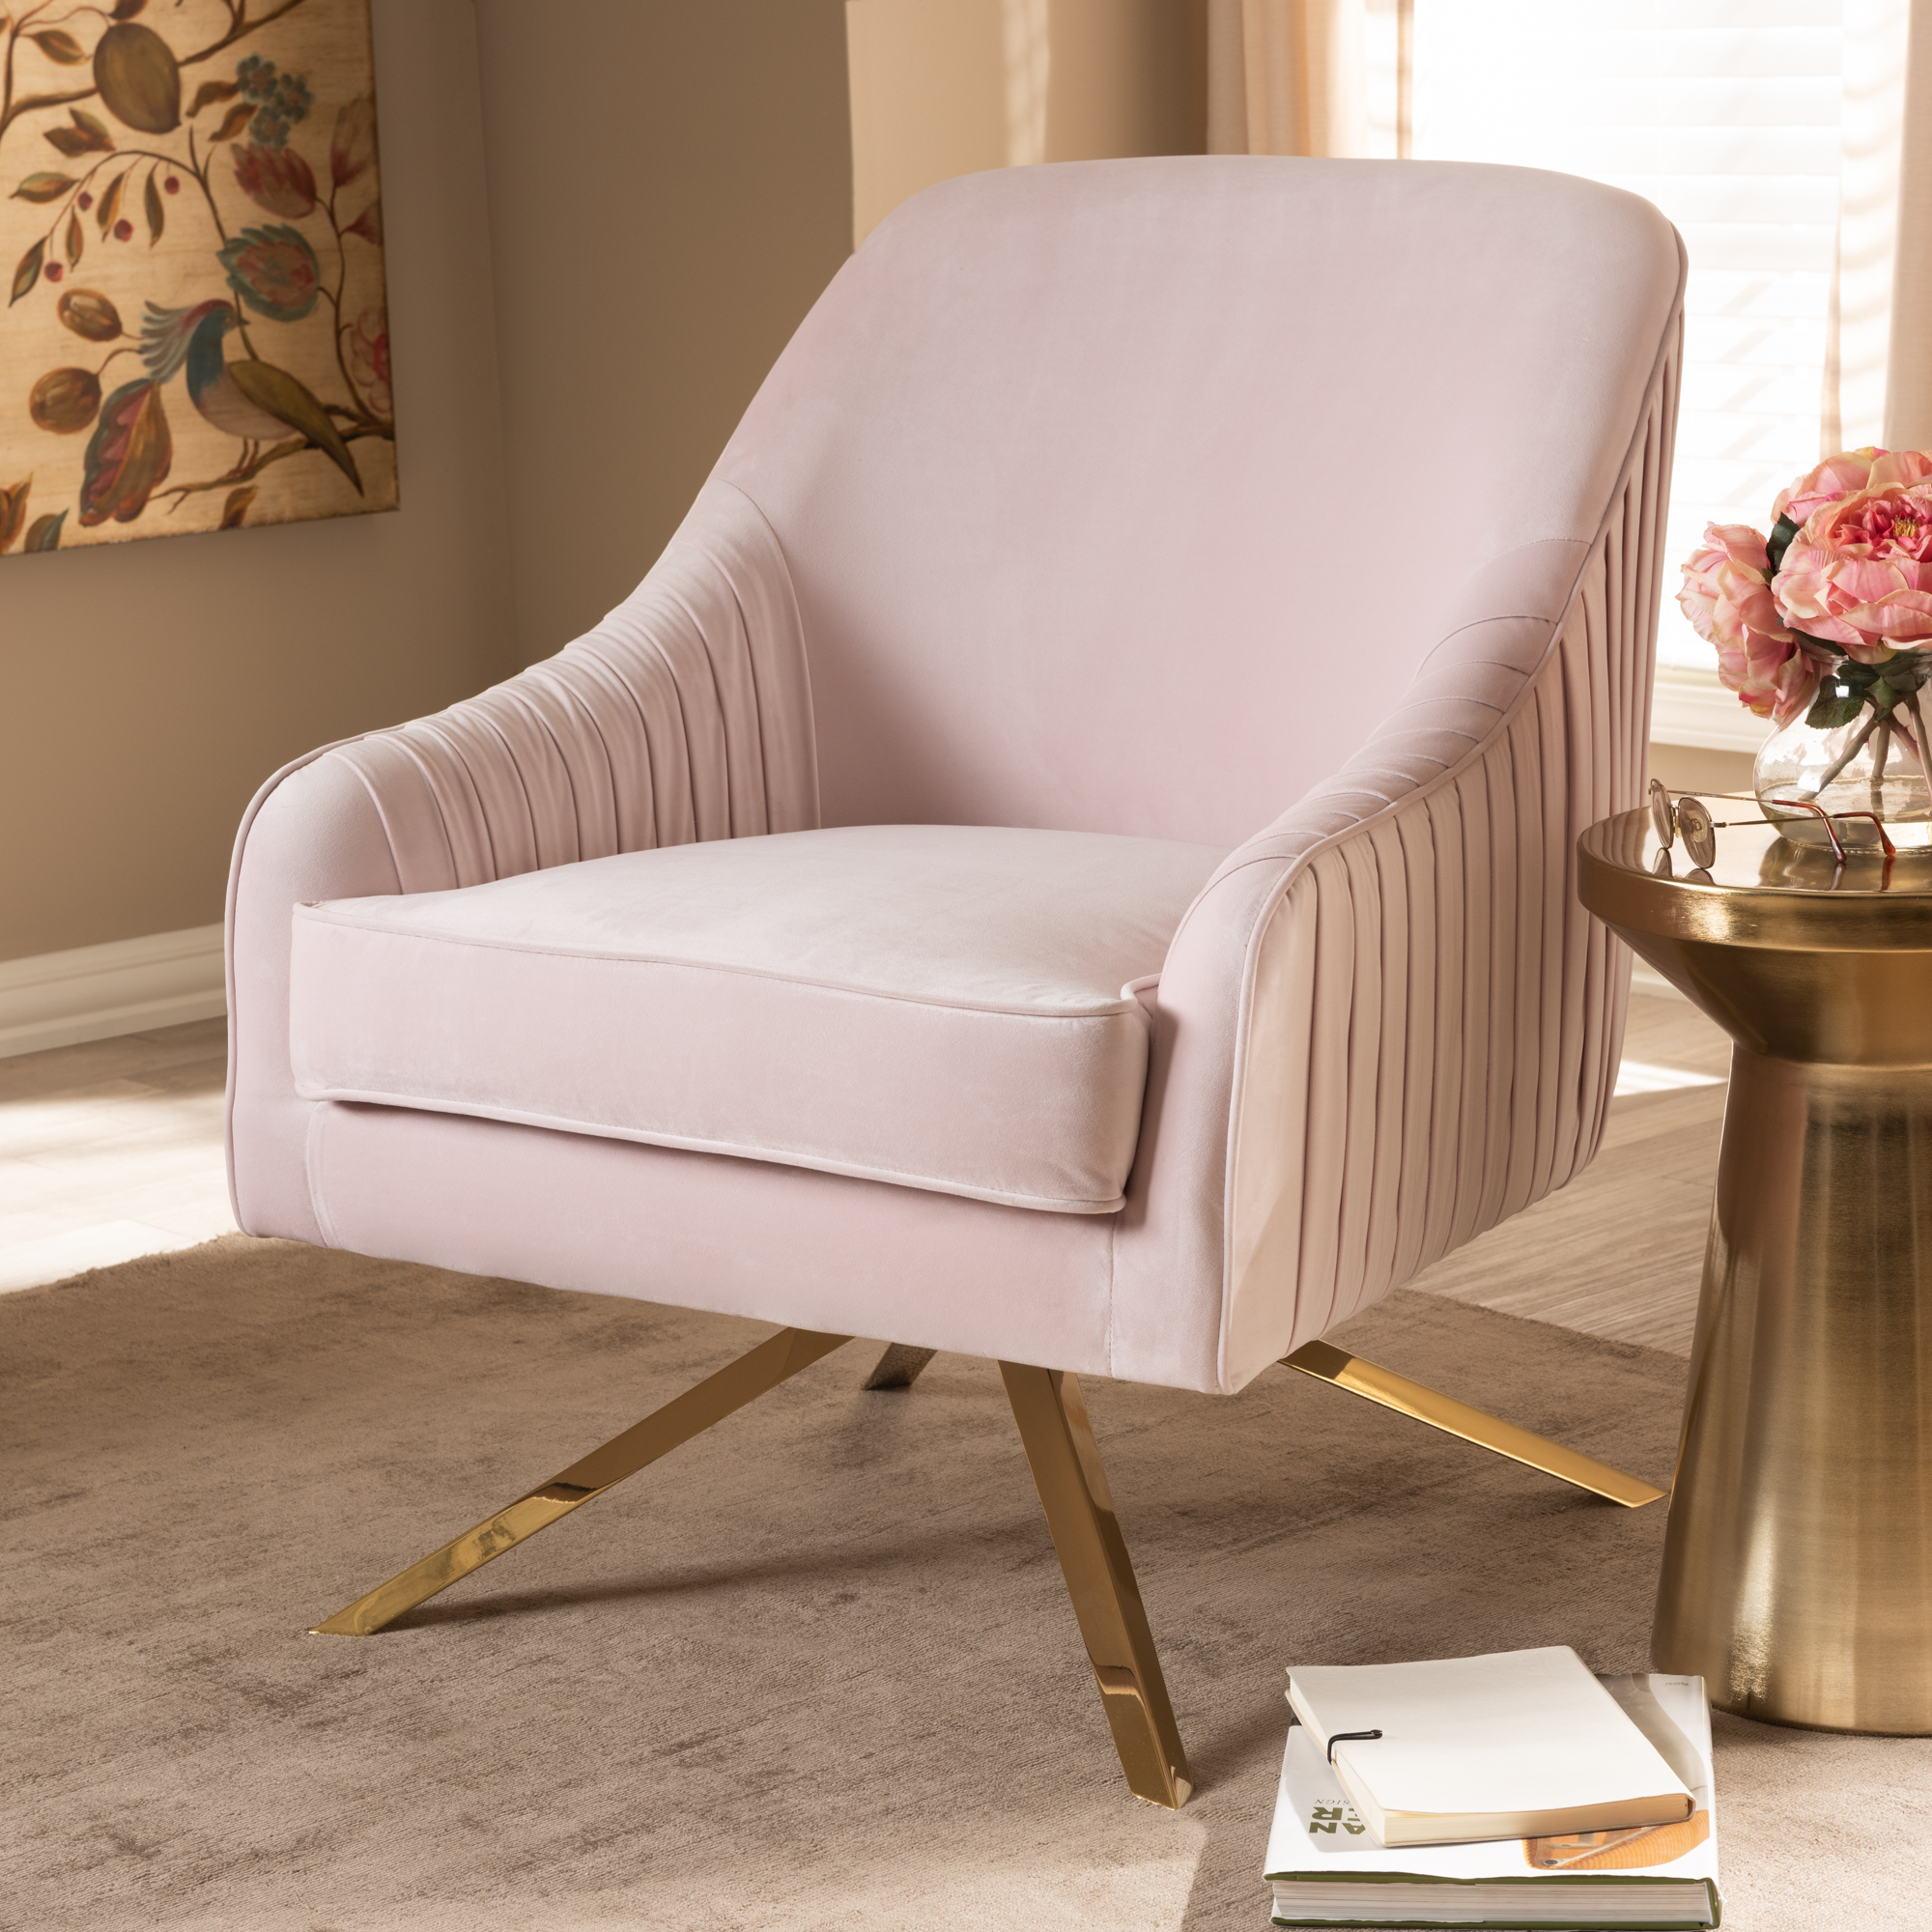 Baxton Studio Amaya Luxe And Glamour Light Pink Velvet Fabric Upholstered Gold Finished Base Lounge Chair by Baxton Studio